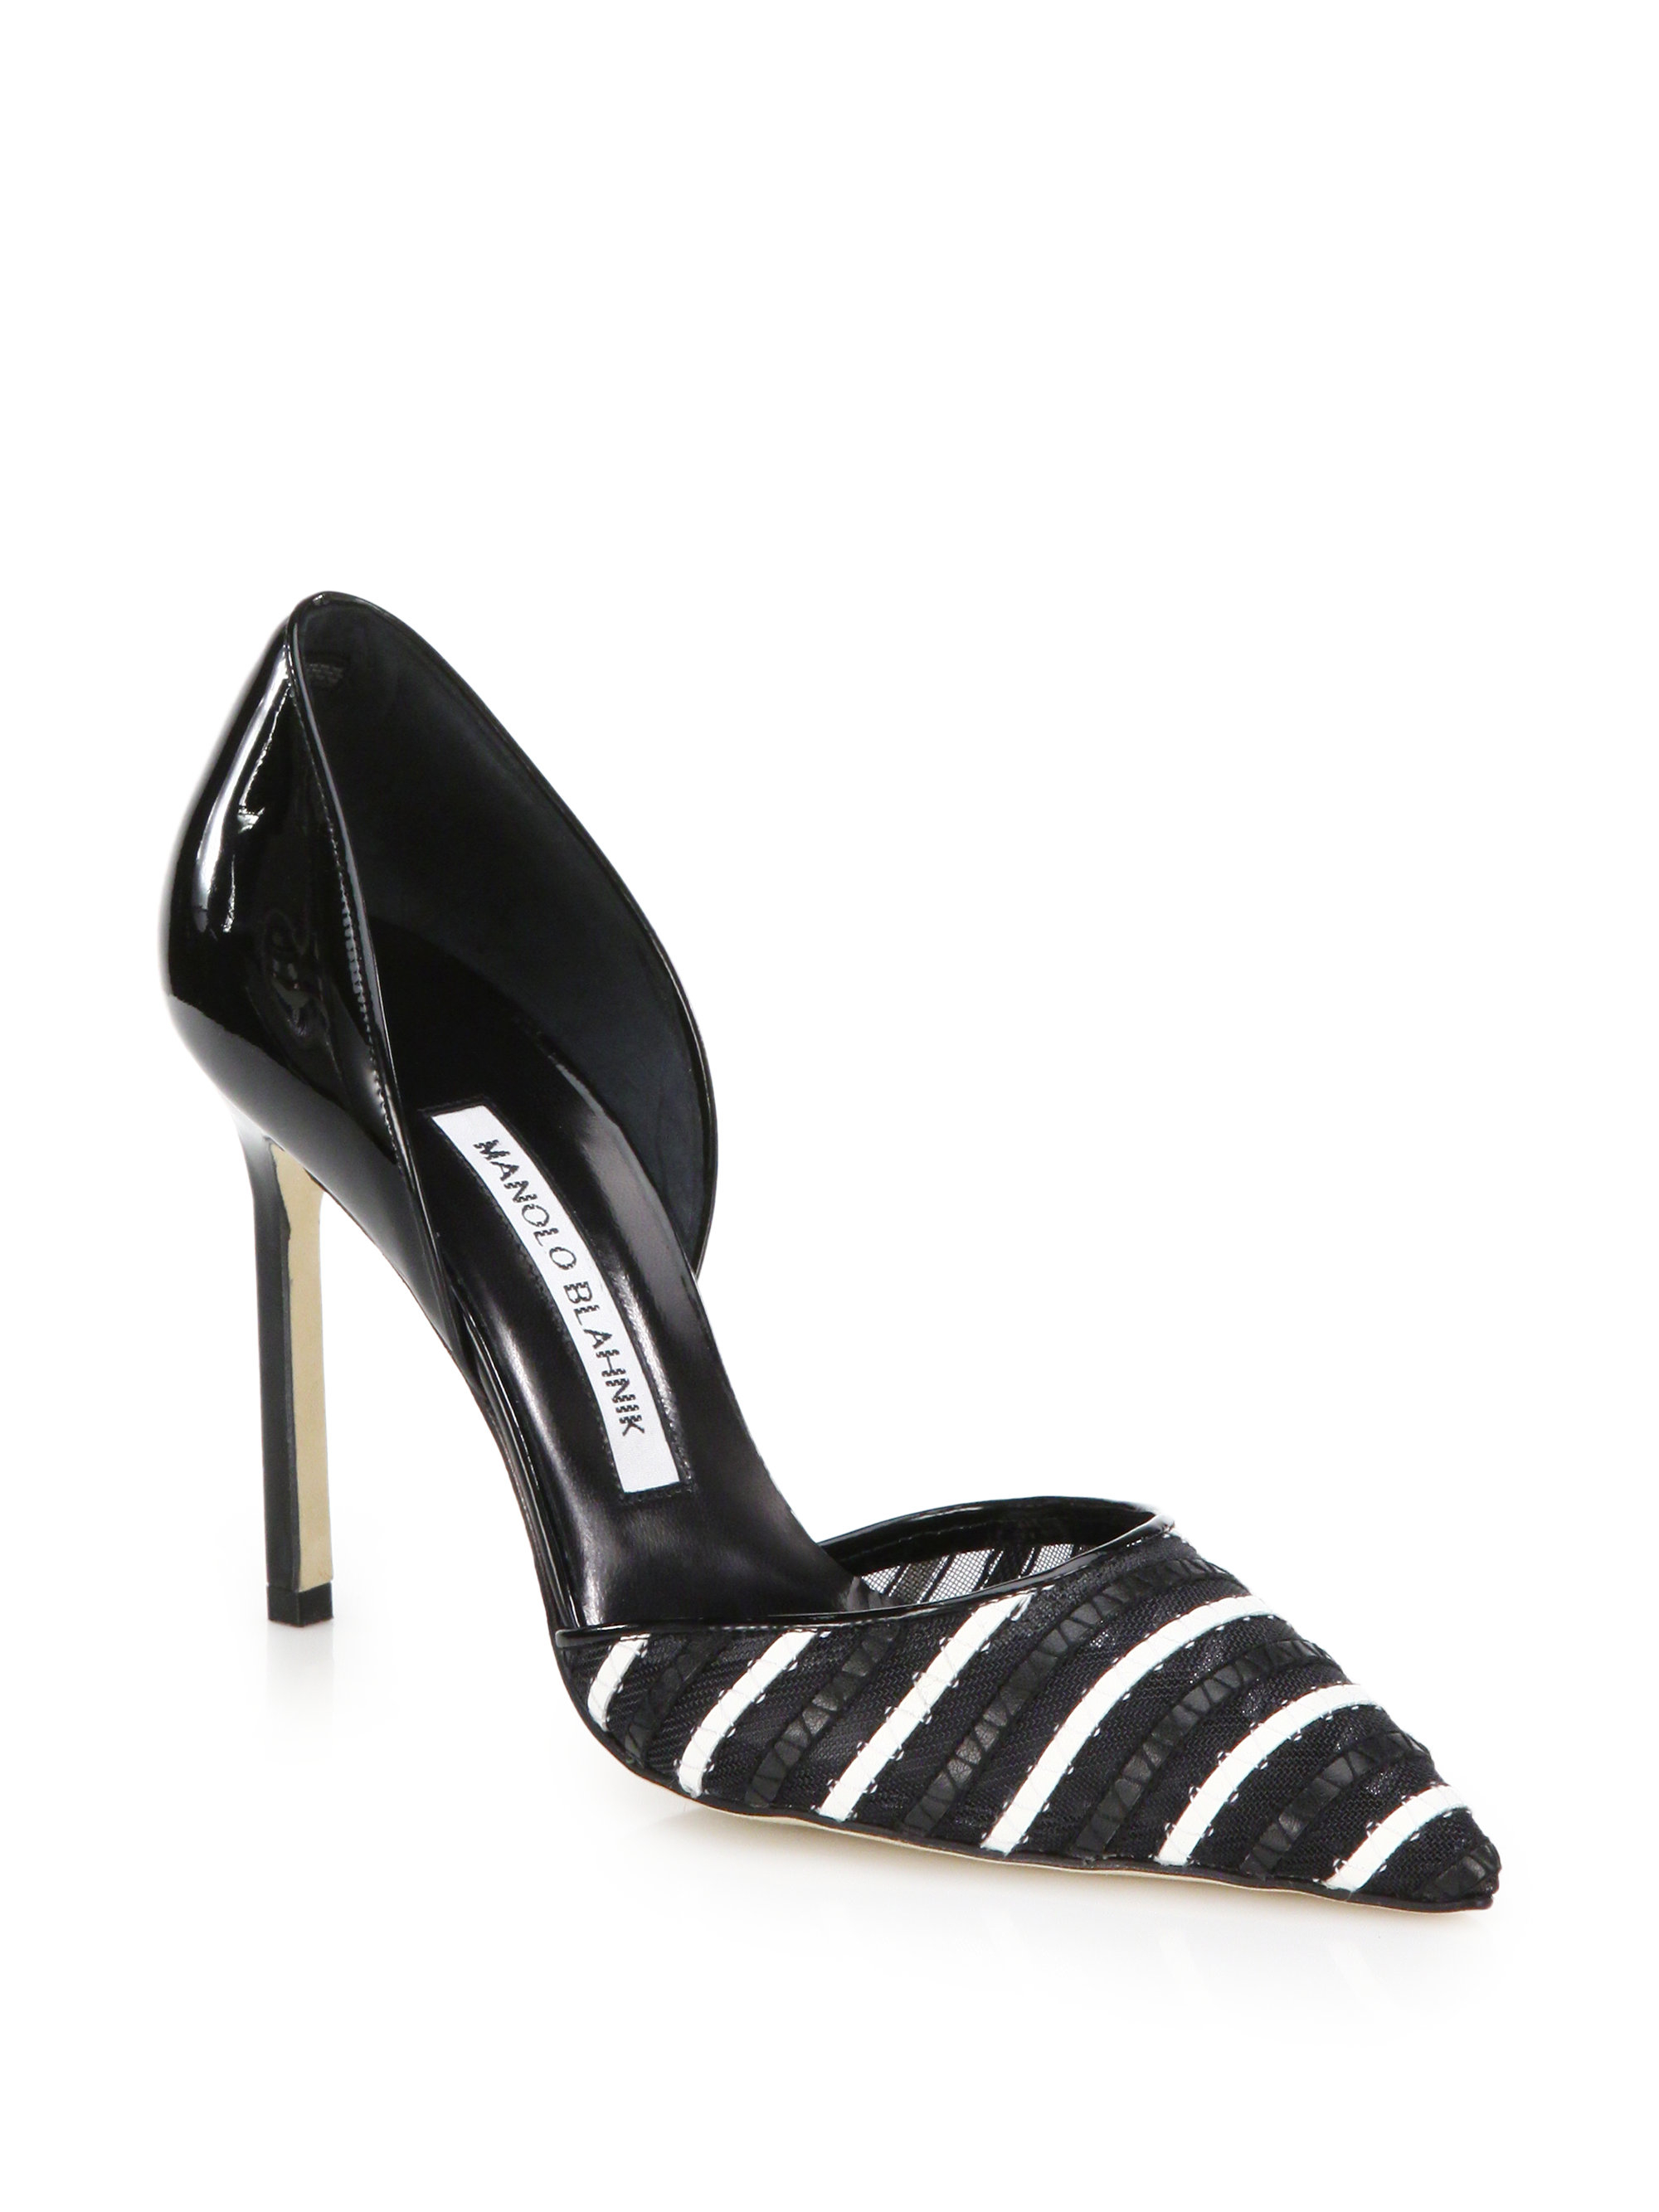 b3b21674ff Manolo Blahnik Tayler Leather & Mesh-striped Patent Leather Pumps in ...